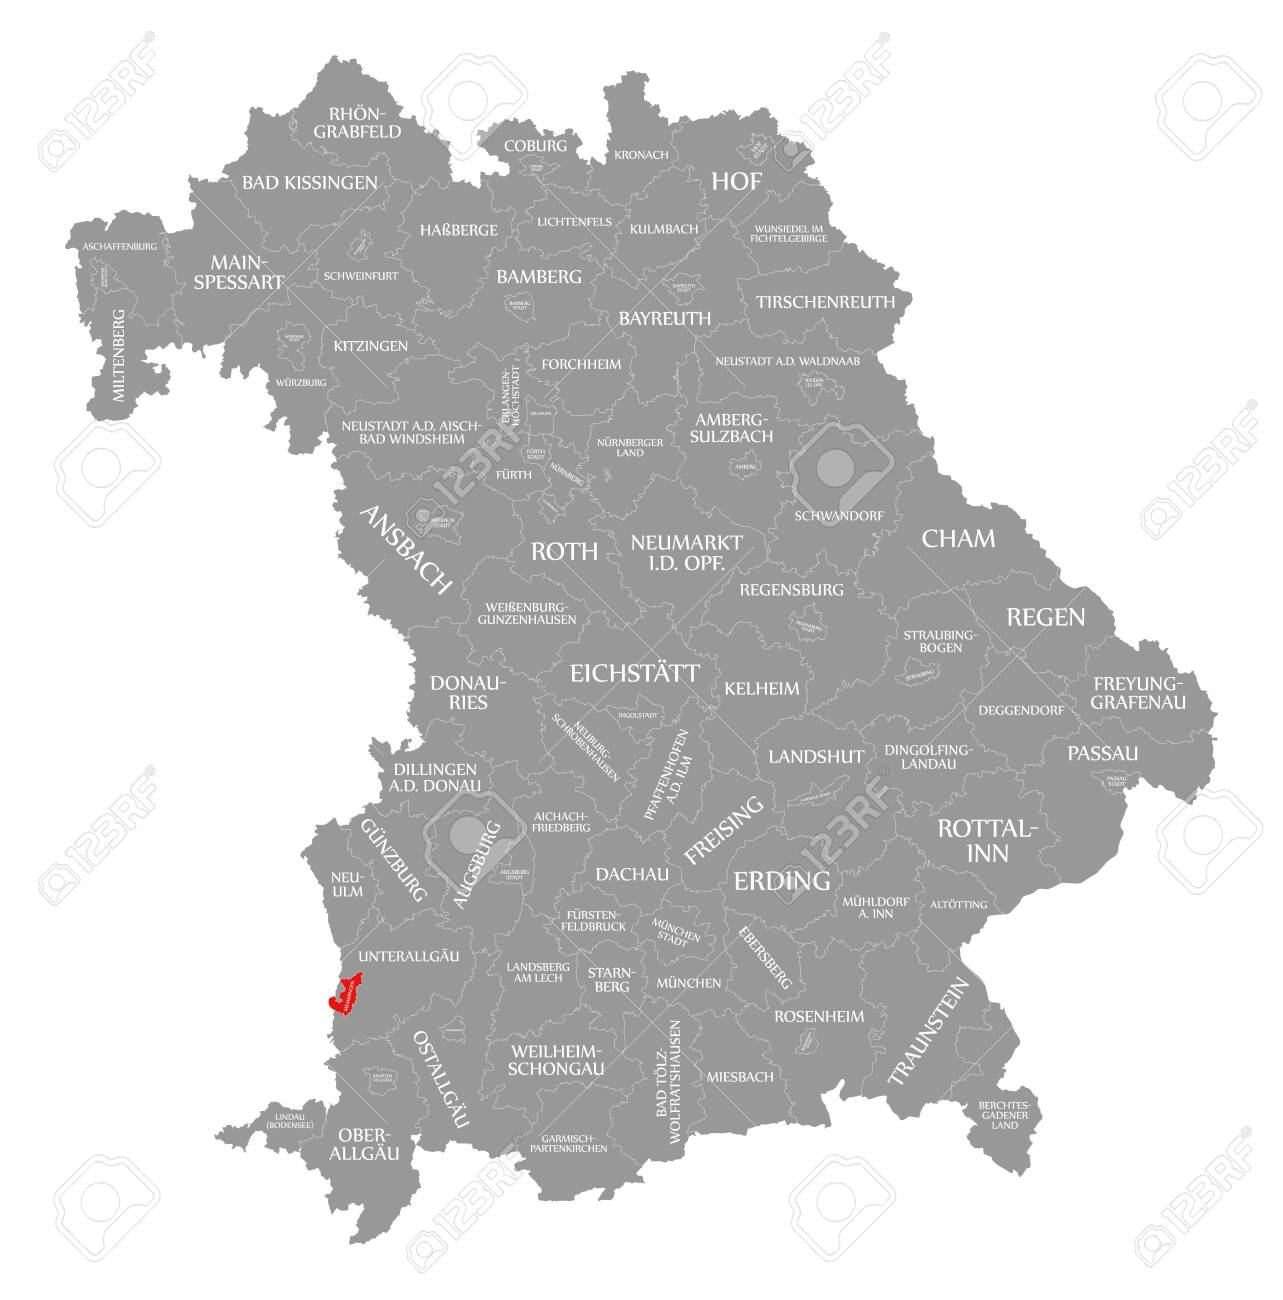 Map Of Germany Memmingen.Memmingen City Red Highlighted In Map Of Bavaria Germany